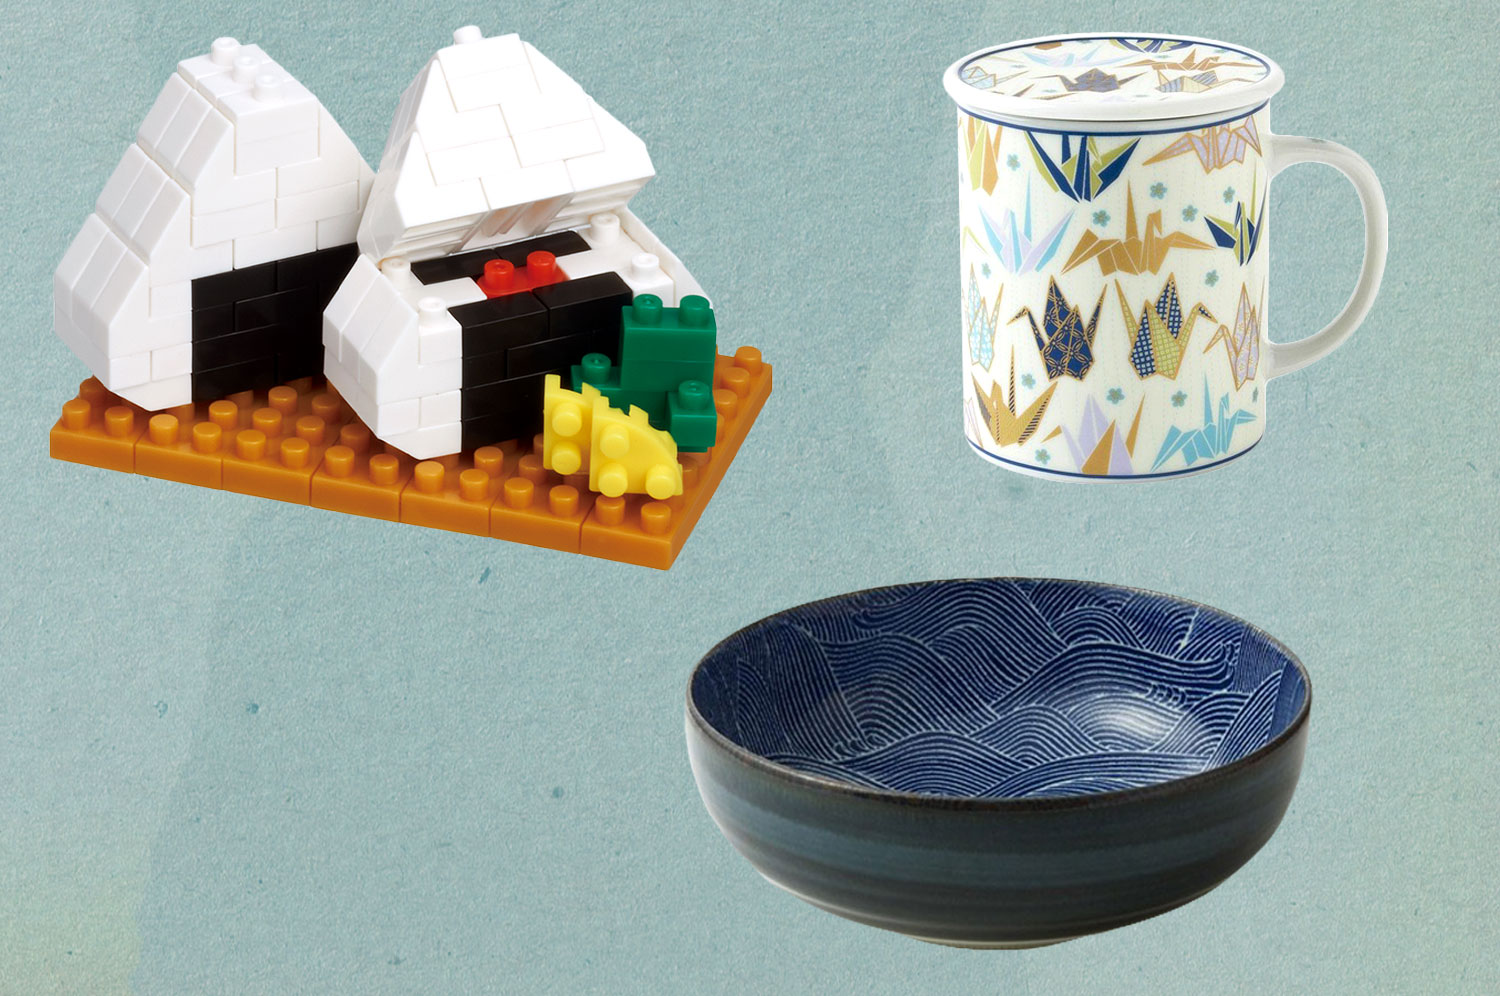 Nanoblocks in the shape of onigiri, a ceramic mug printed with paper cranes, and a blue Japanese serving bowl.